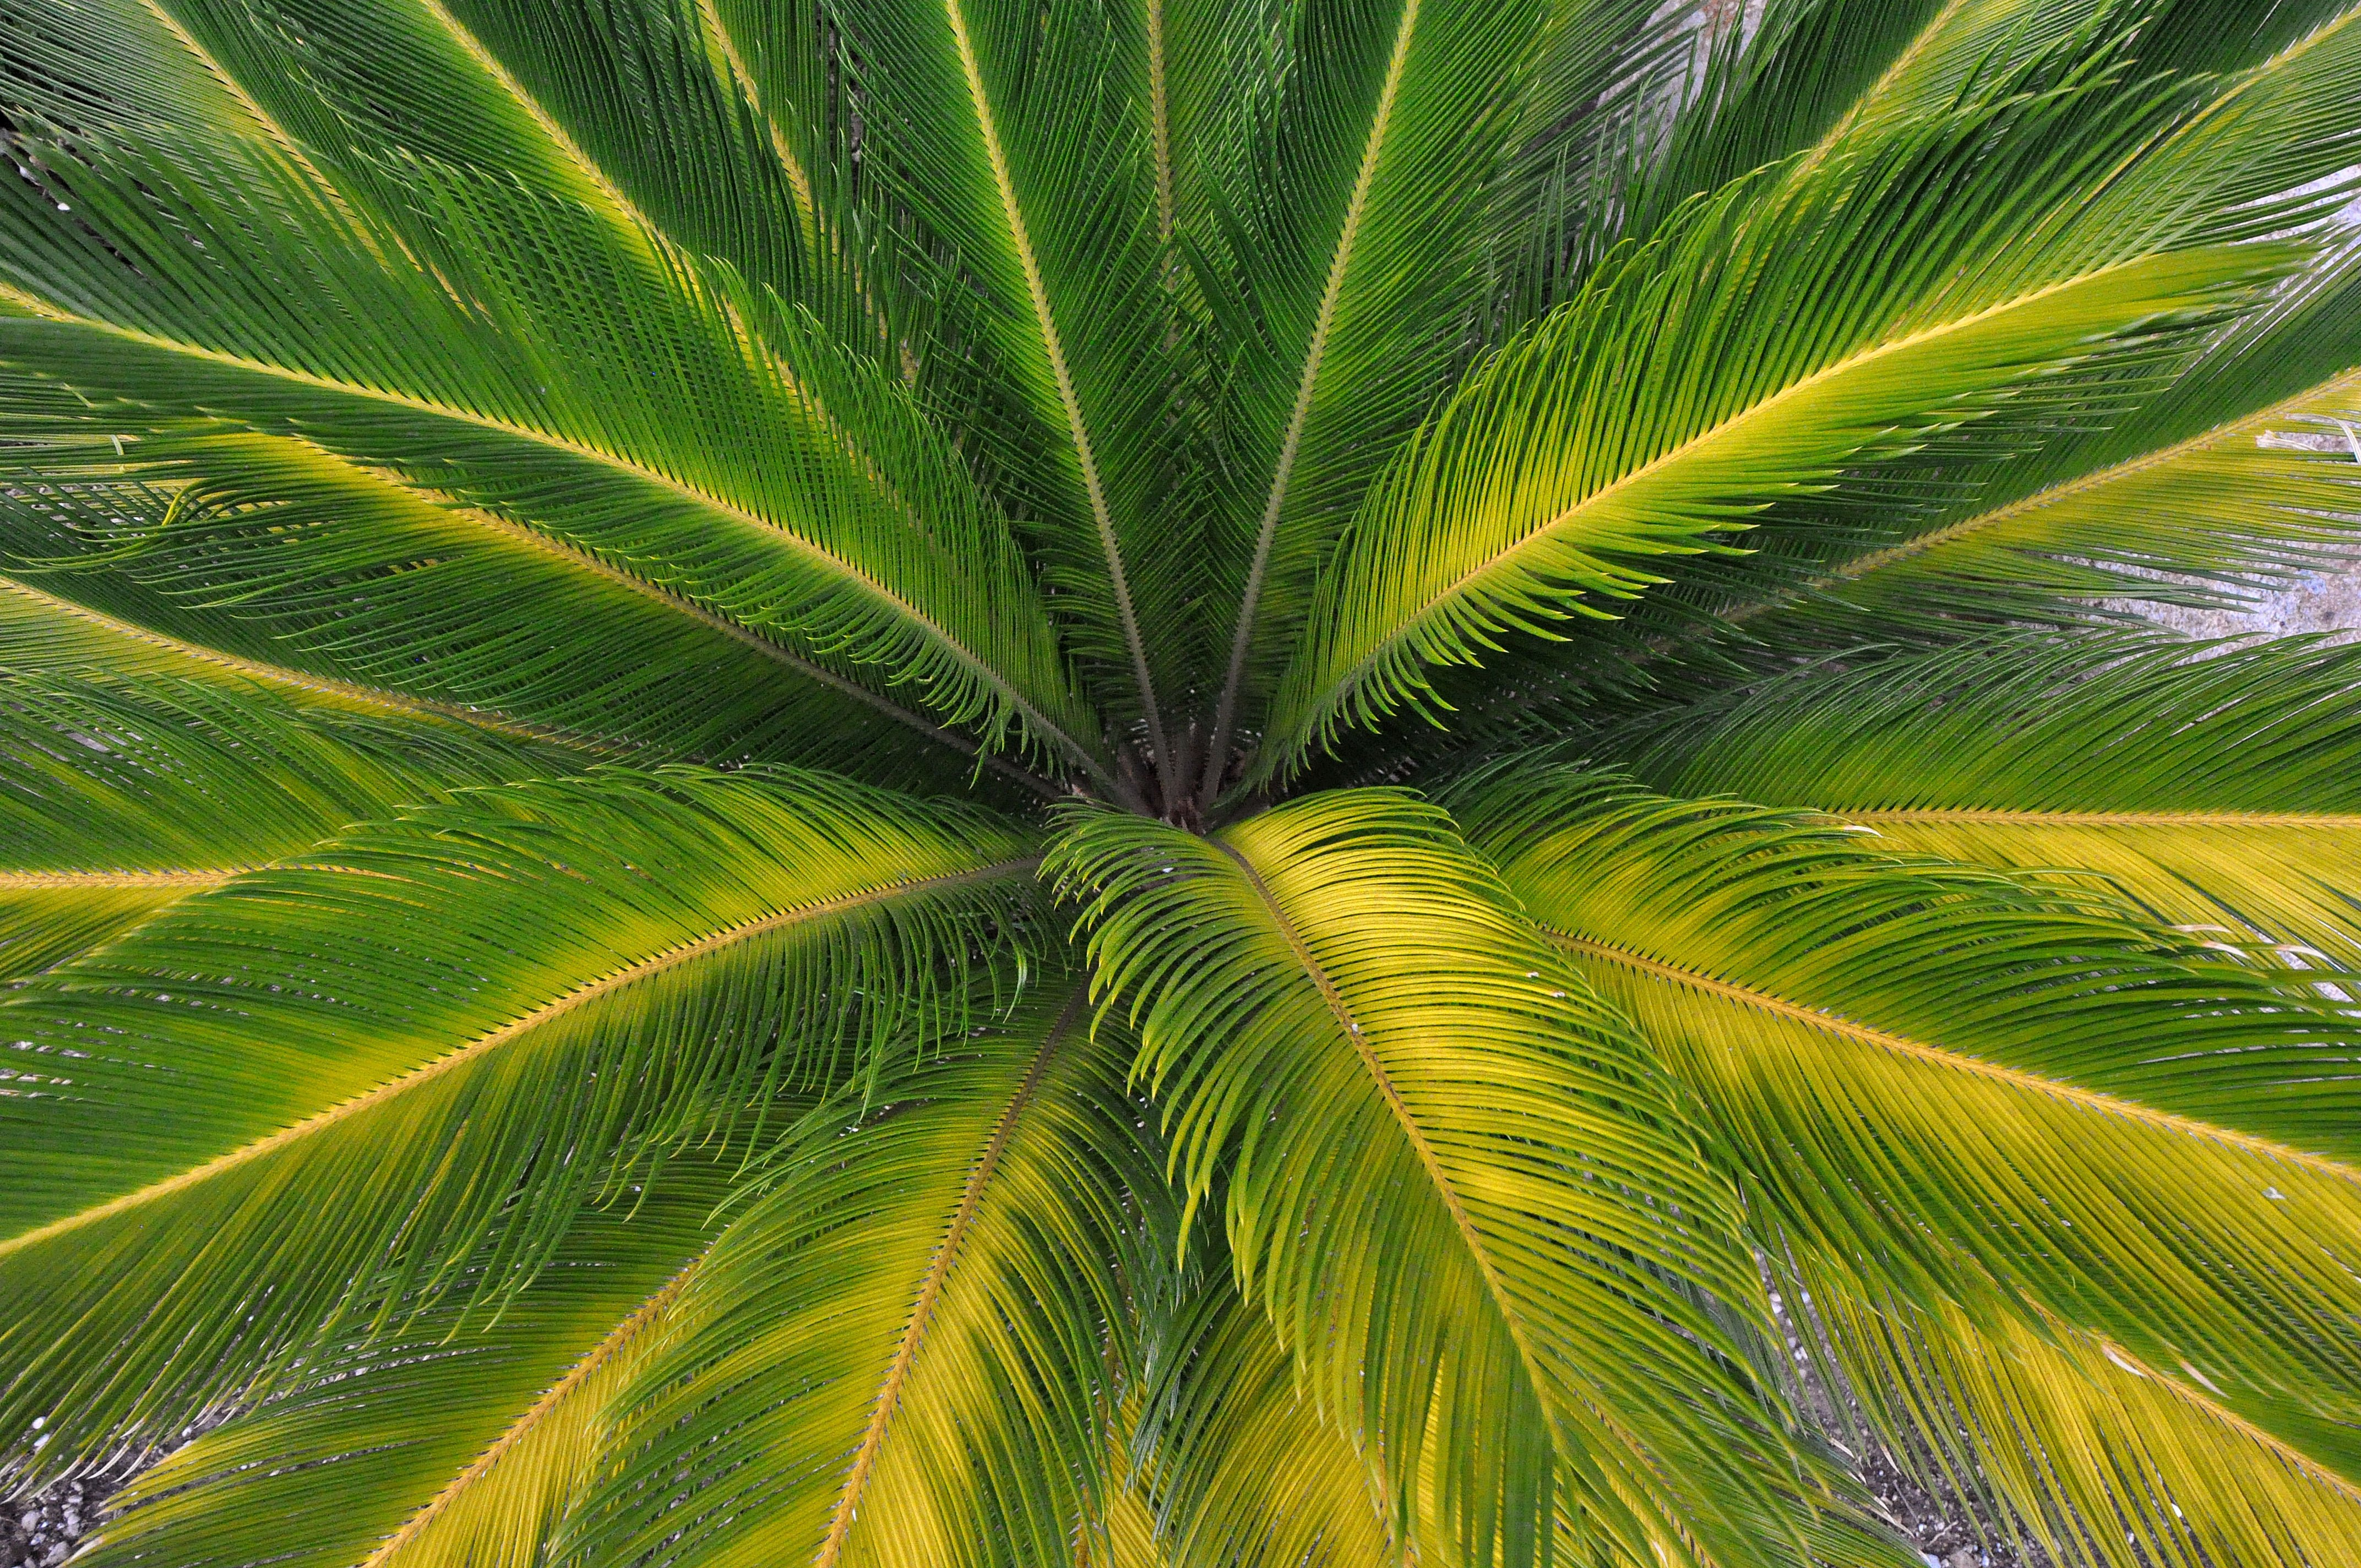 Palm leaves nature wallpaper 4288x2848 247281 WallpaperUP 4288x2848